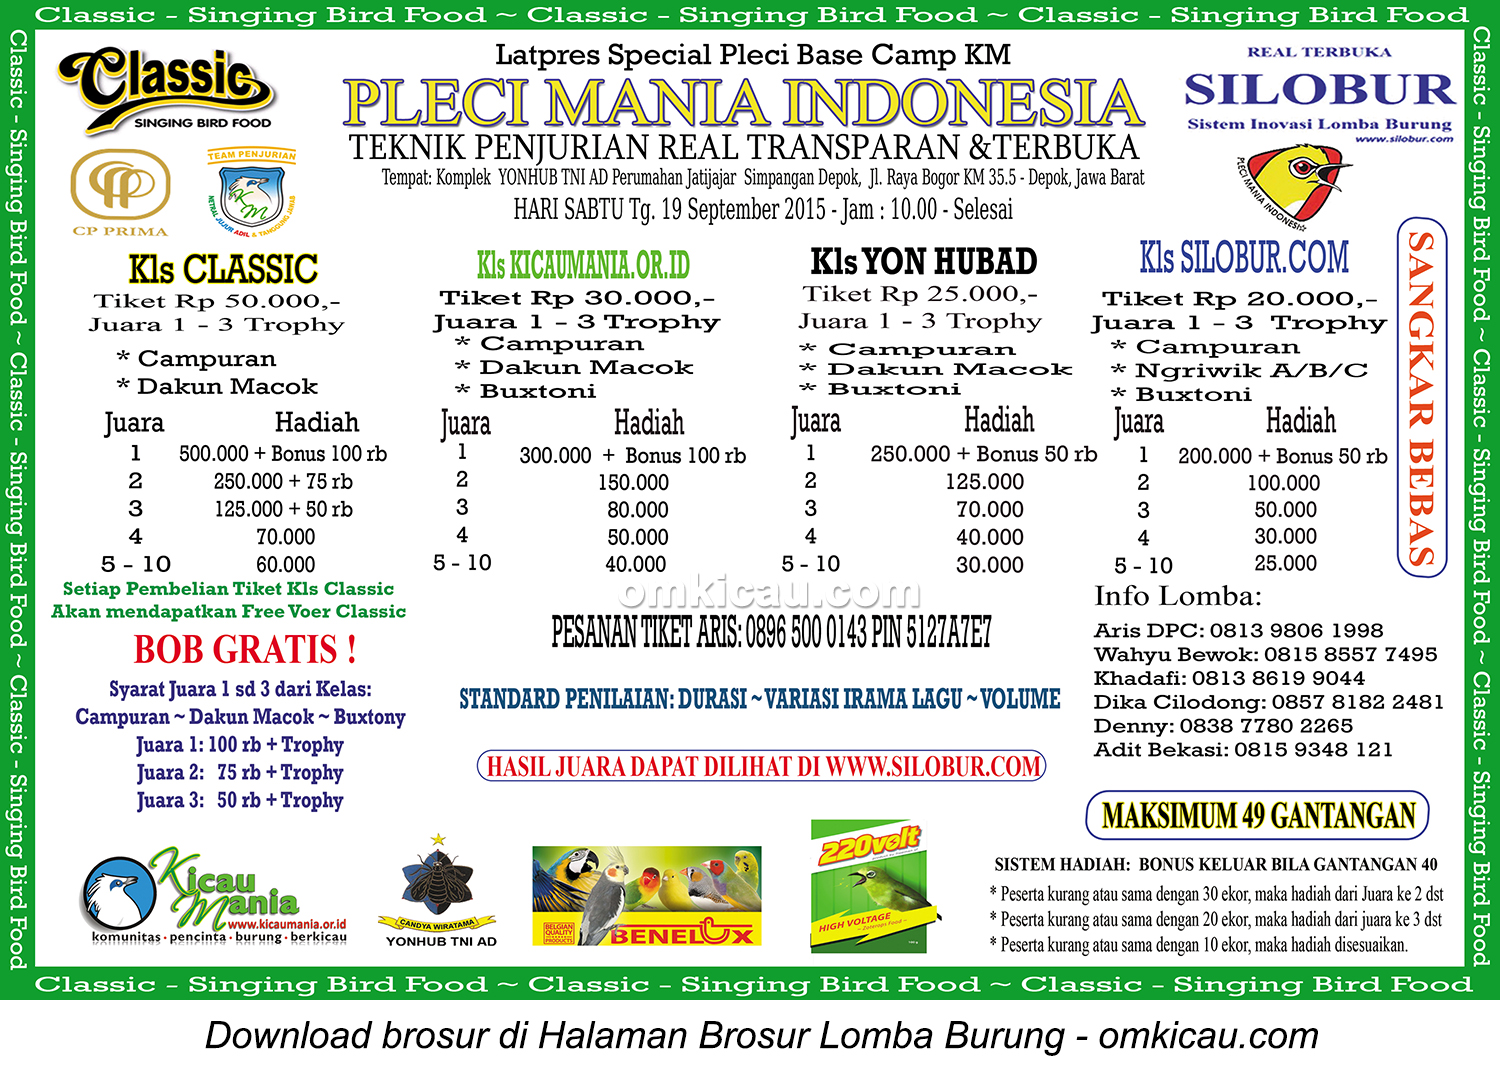 Brosur Latpres Special Pleci Base Camp KM - Pleci Mania Indonesia, Depok, 19 September 2015